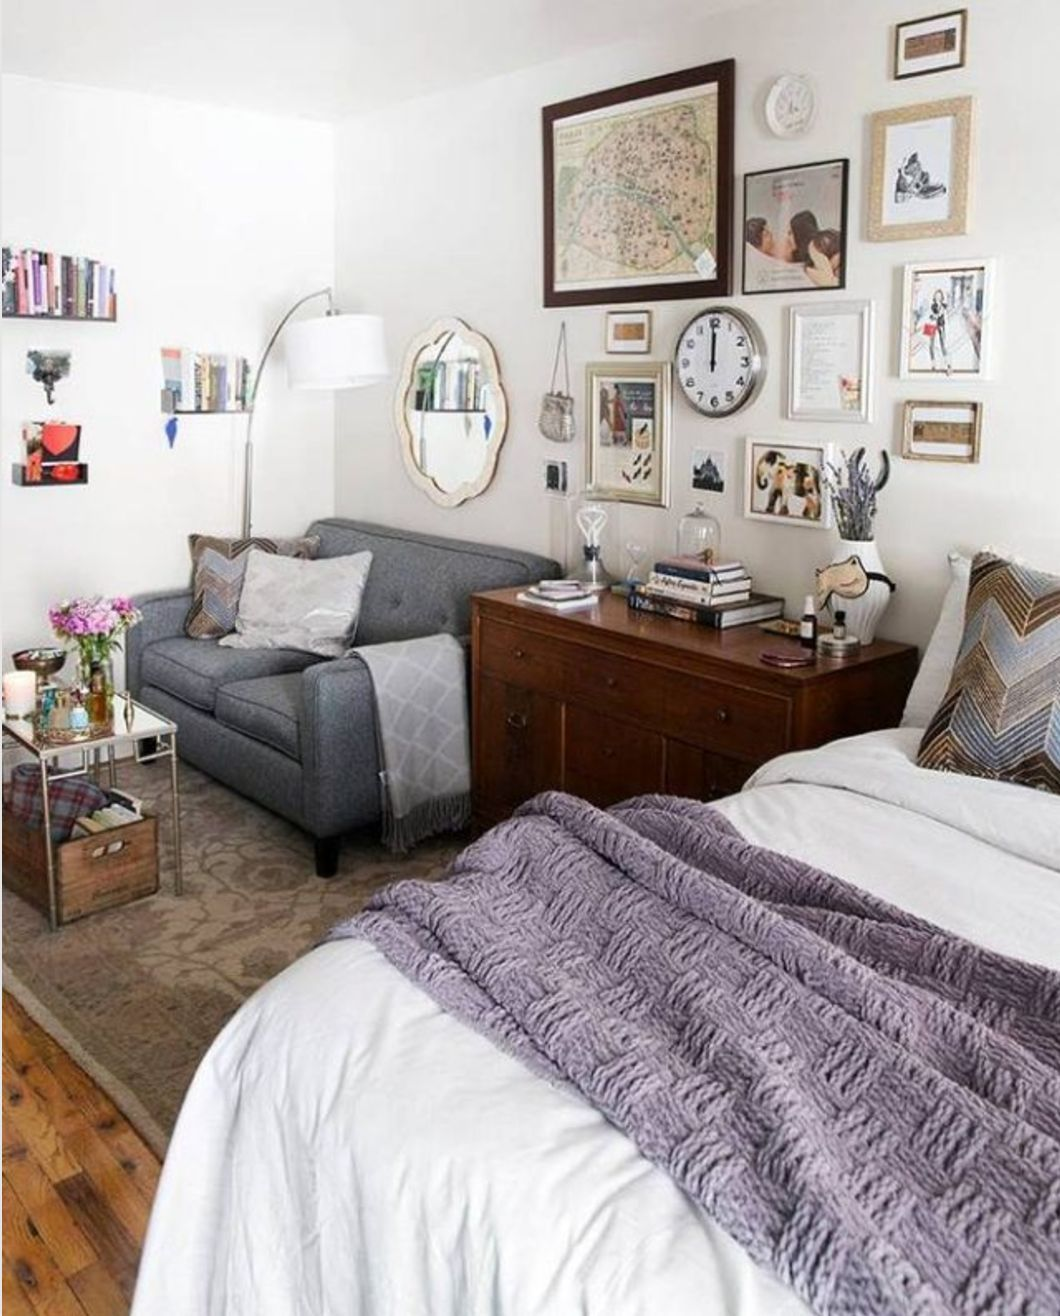 17 studio apartments that are chock full of organizing ideas ...